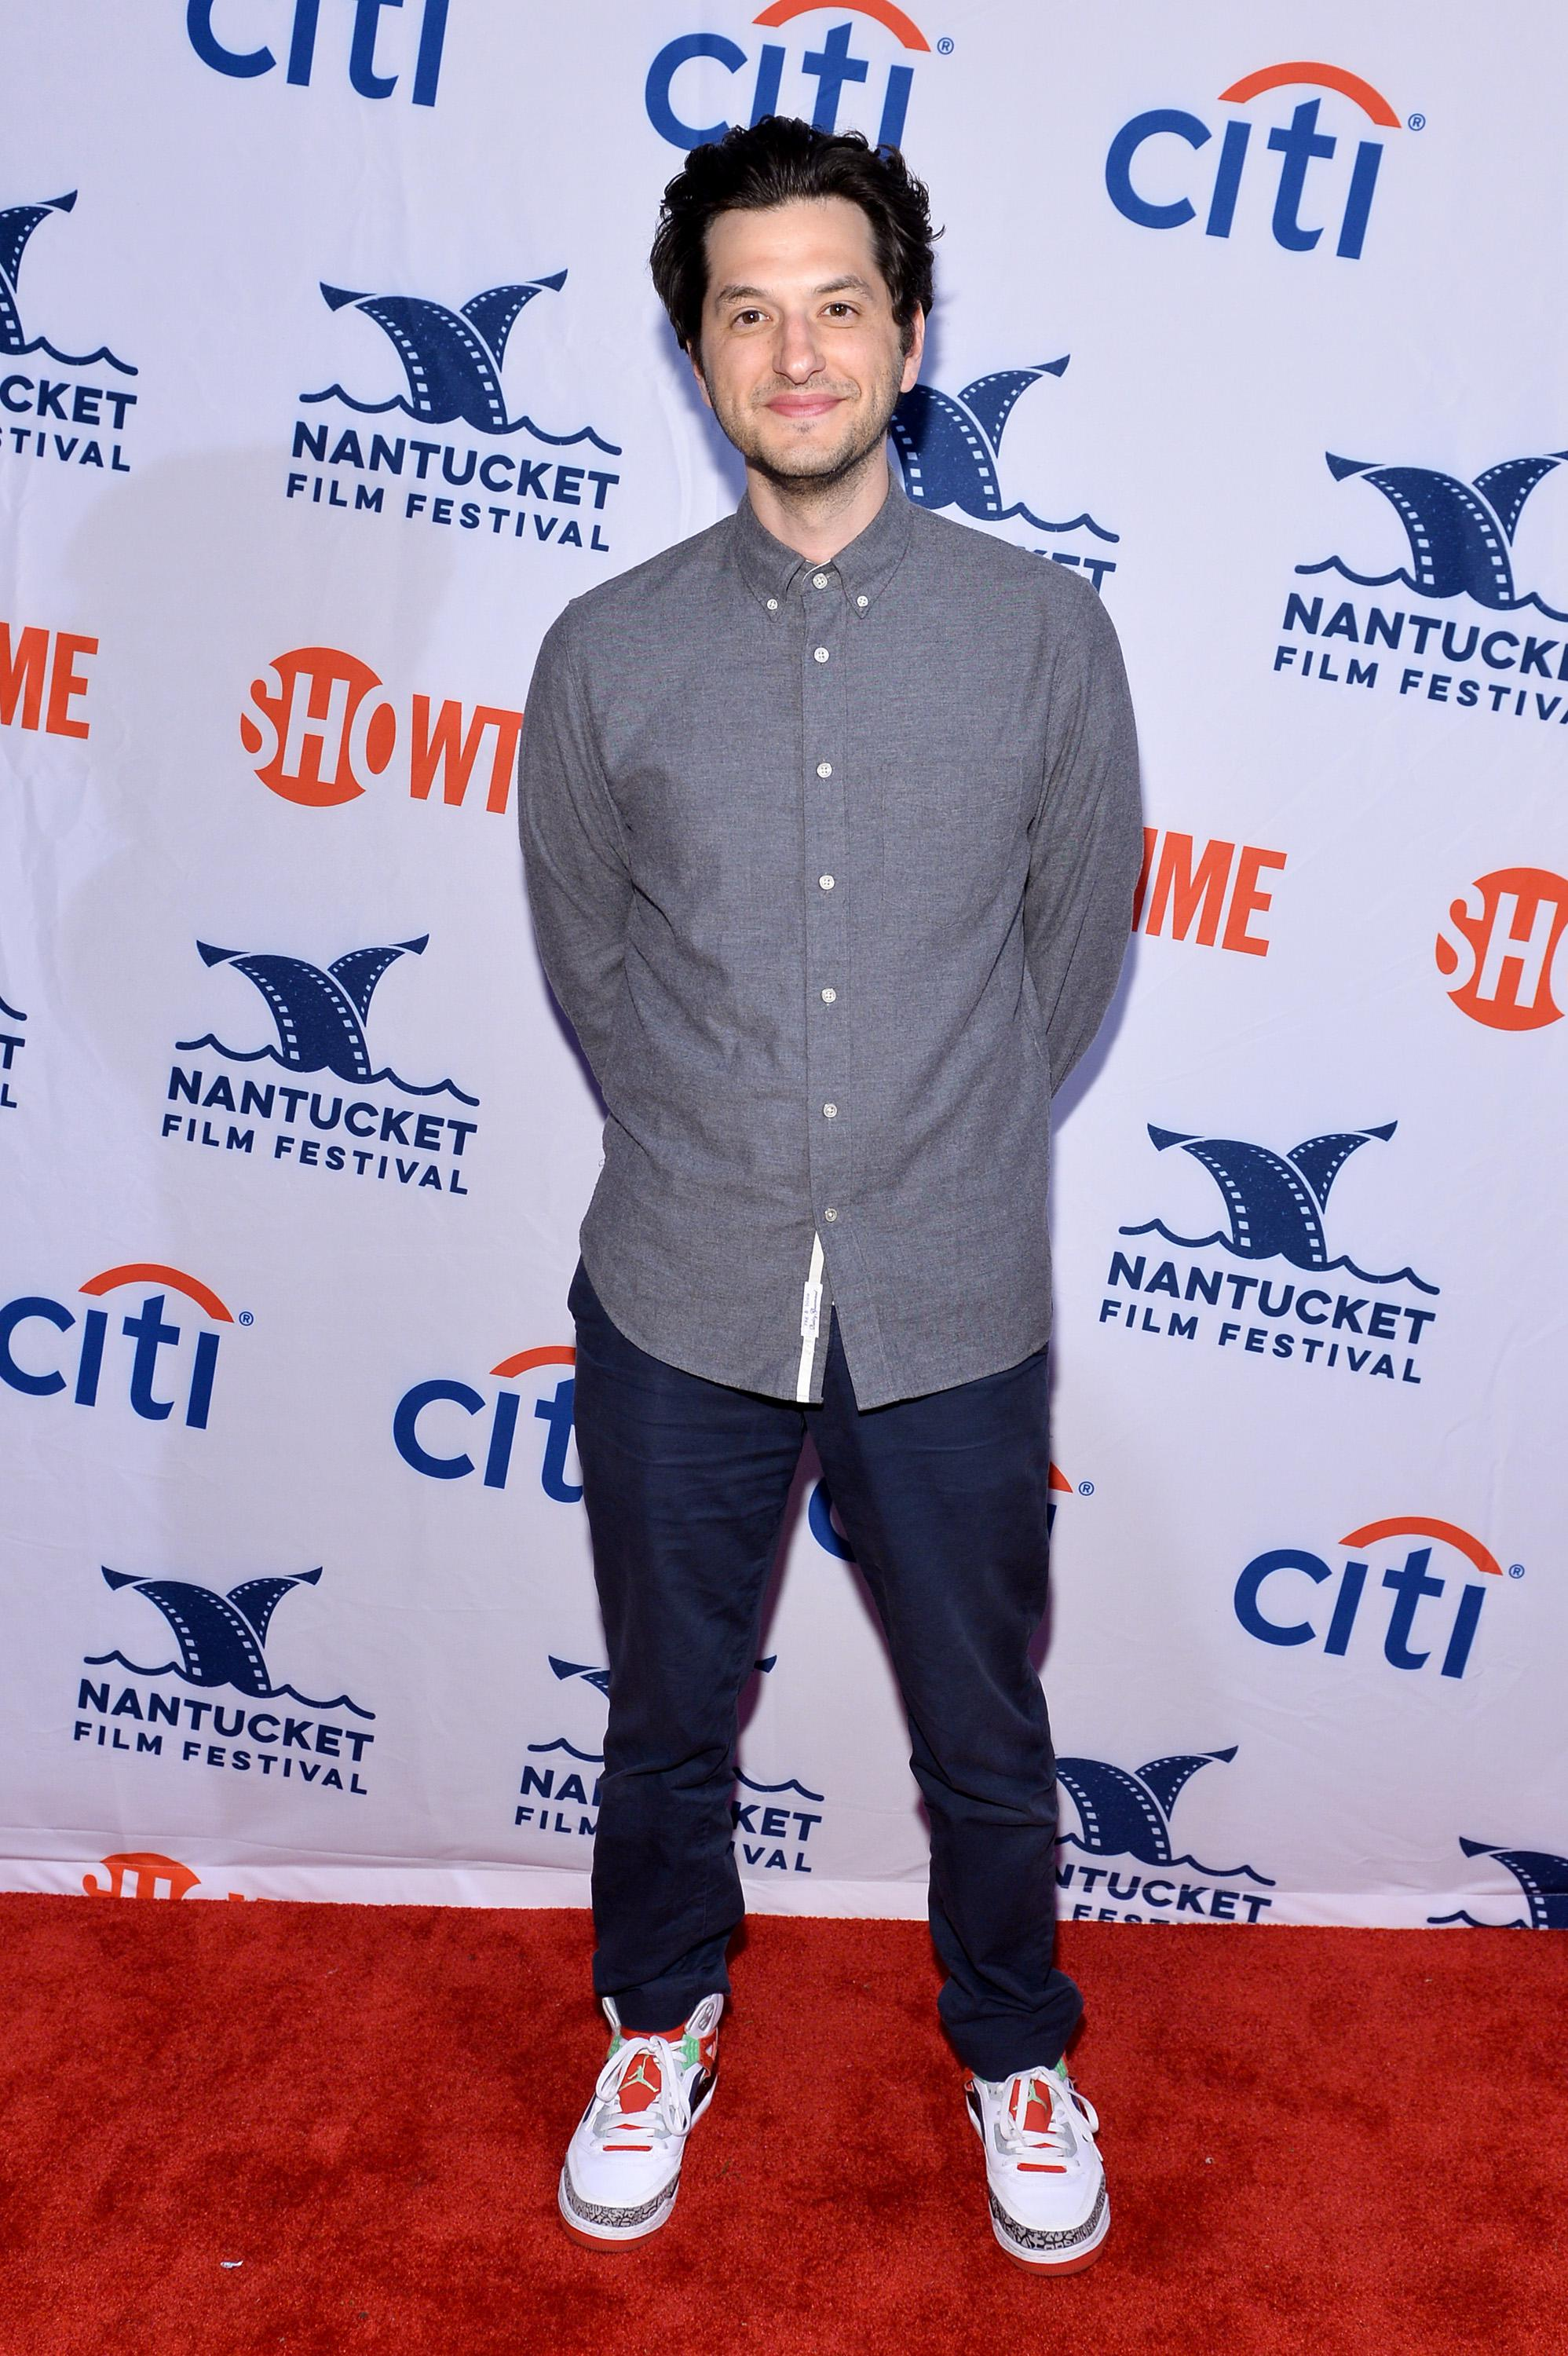 Ben Schwartz on a red carpet.